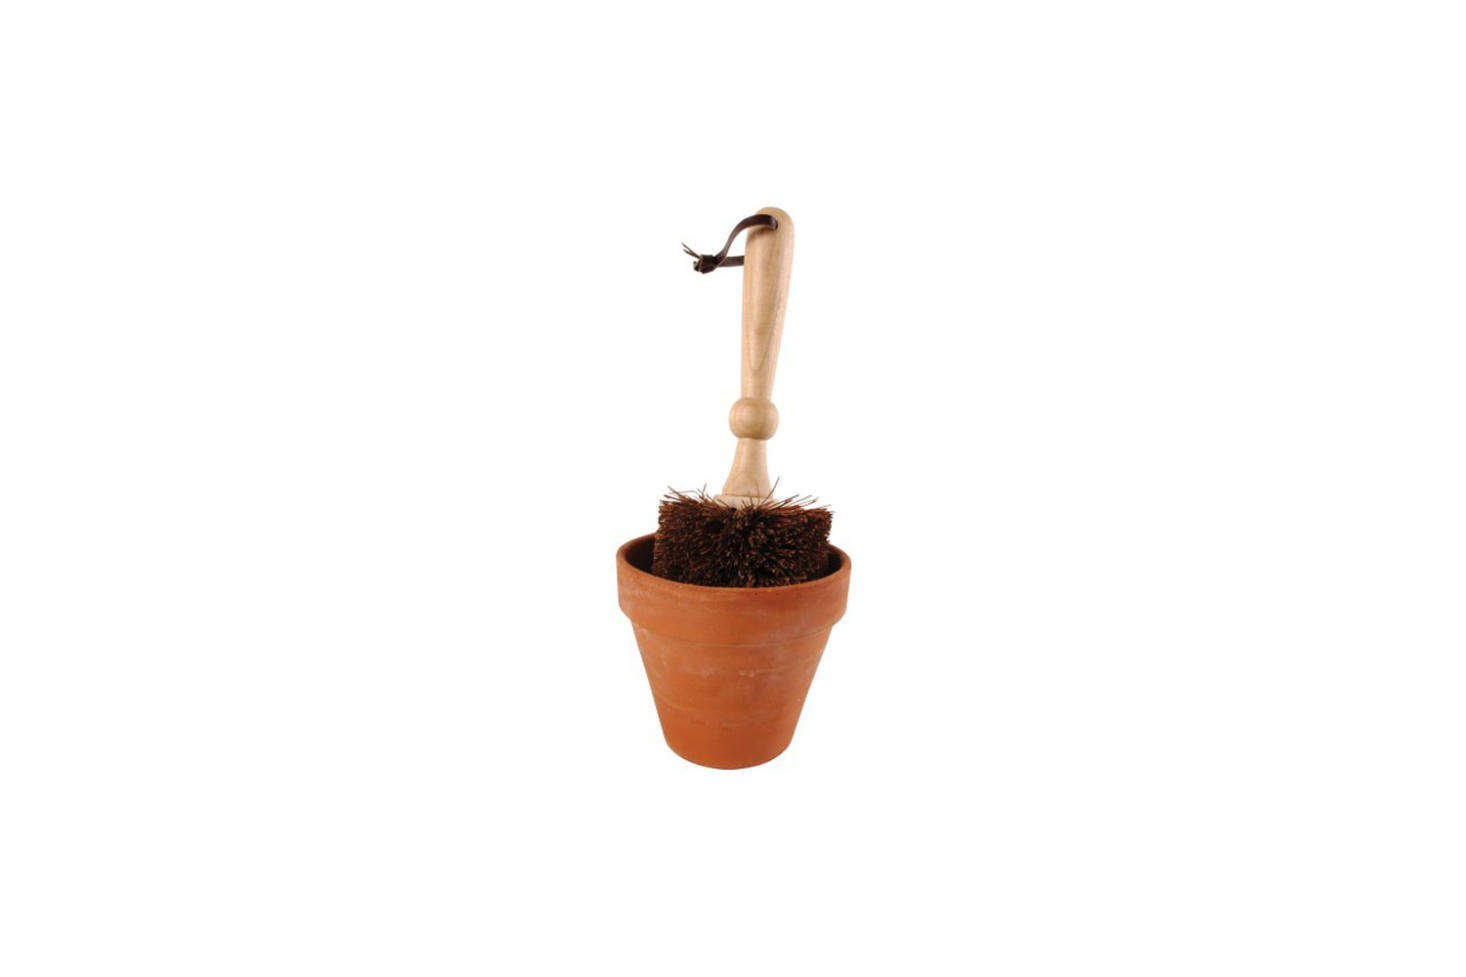 The Esschert Design Flower Pot Bristle Brush is good for dusting off the interior of old pots and comes with a little leather tie for hanging on a rail; $15.99 on Amazon Prime. For more see our postGarden Shed Essentials: Flowerpot Brushes.